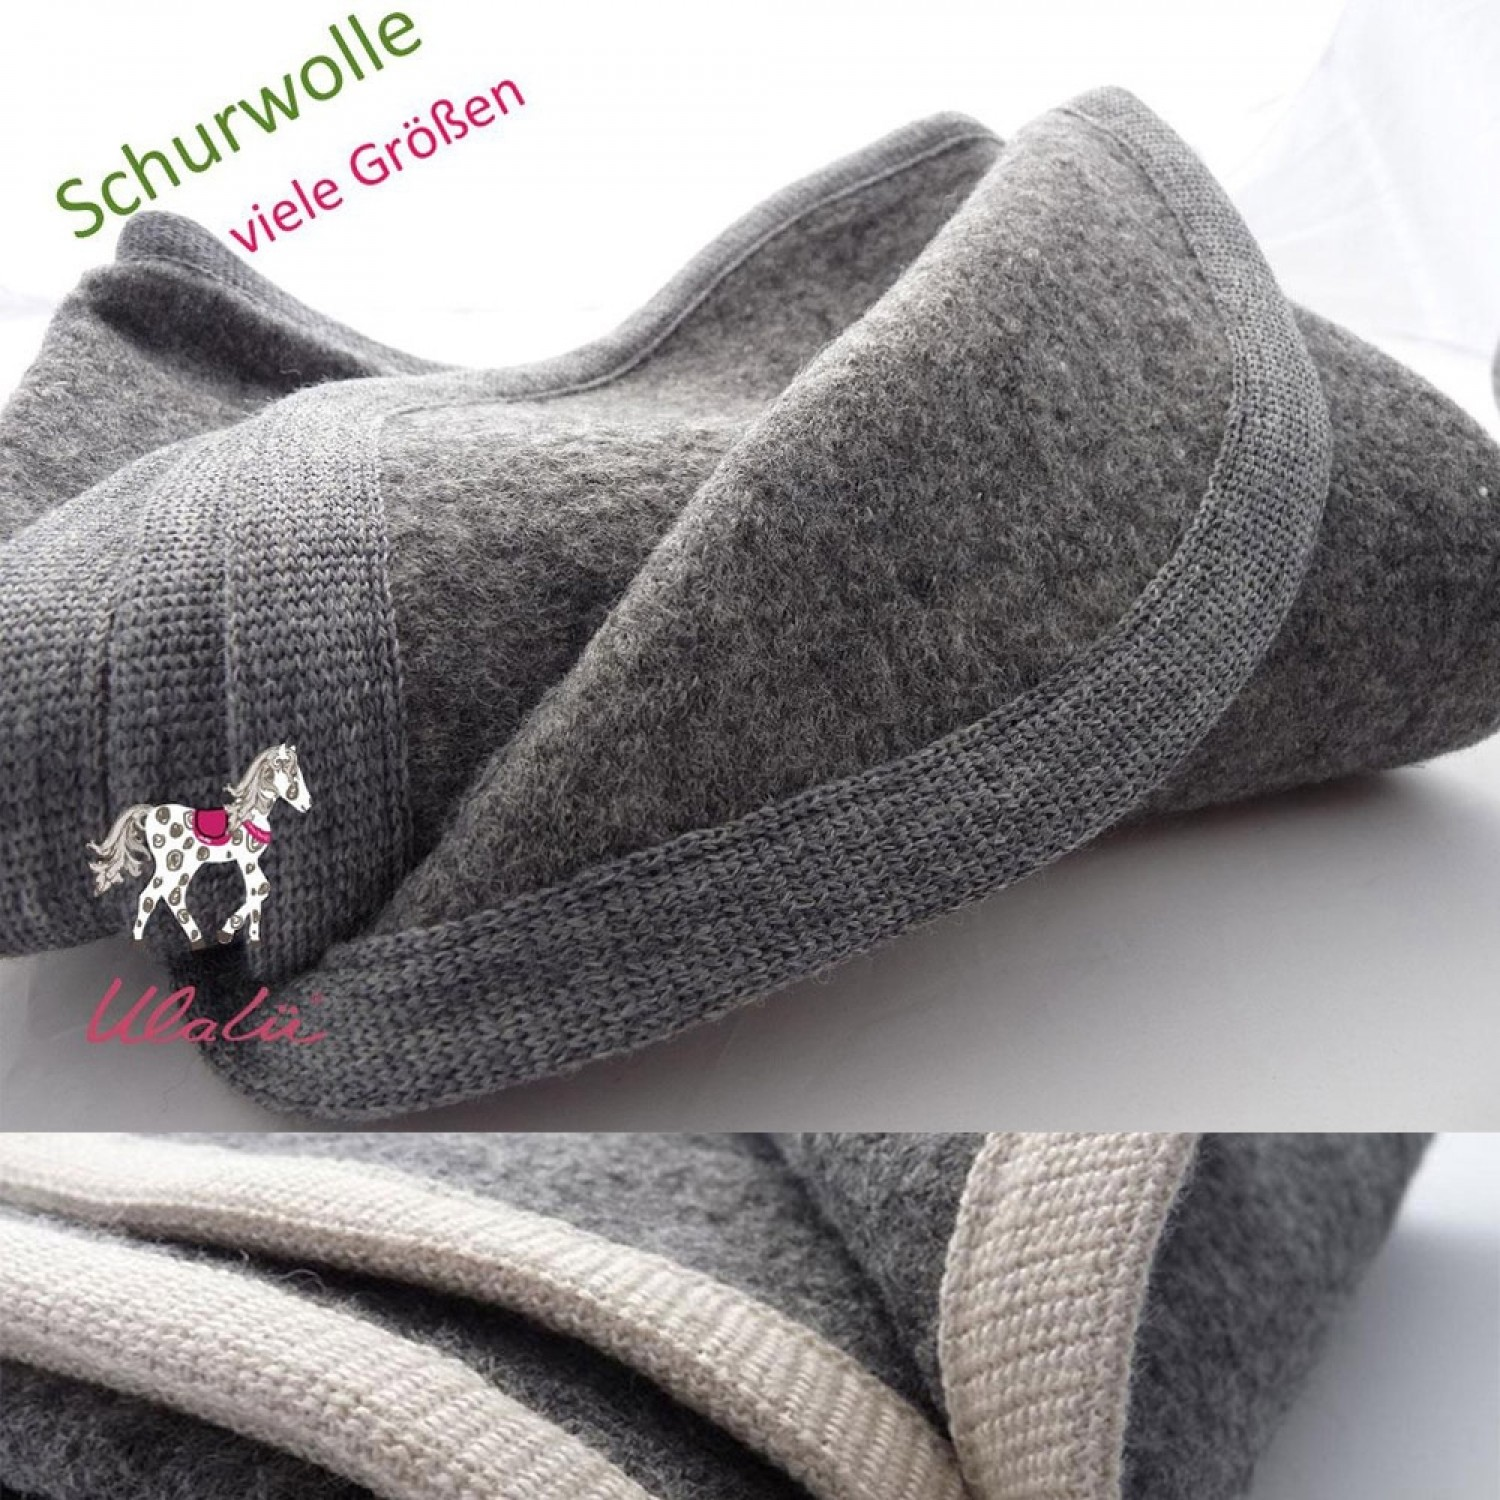 Baby Wool Blanket of certified pure new wool | Ulalue